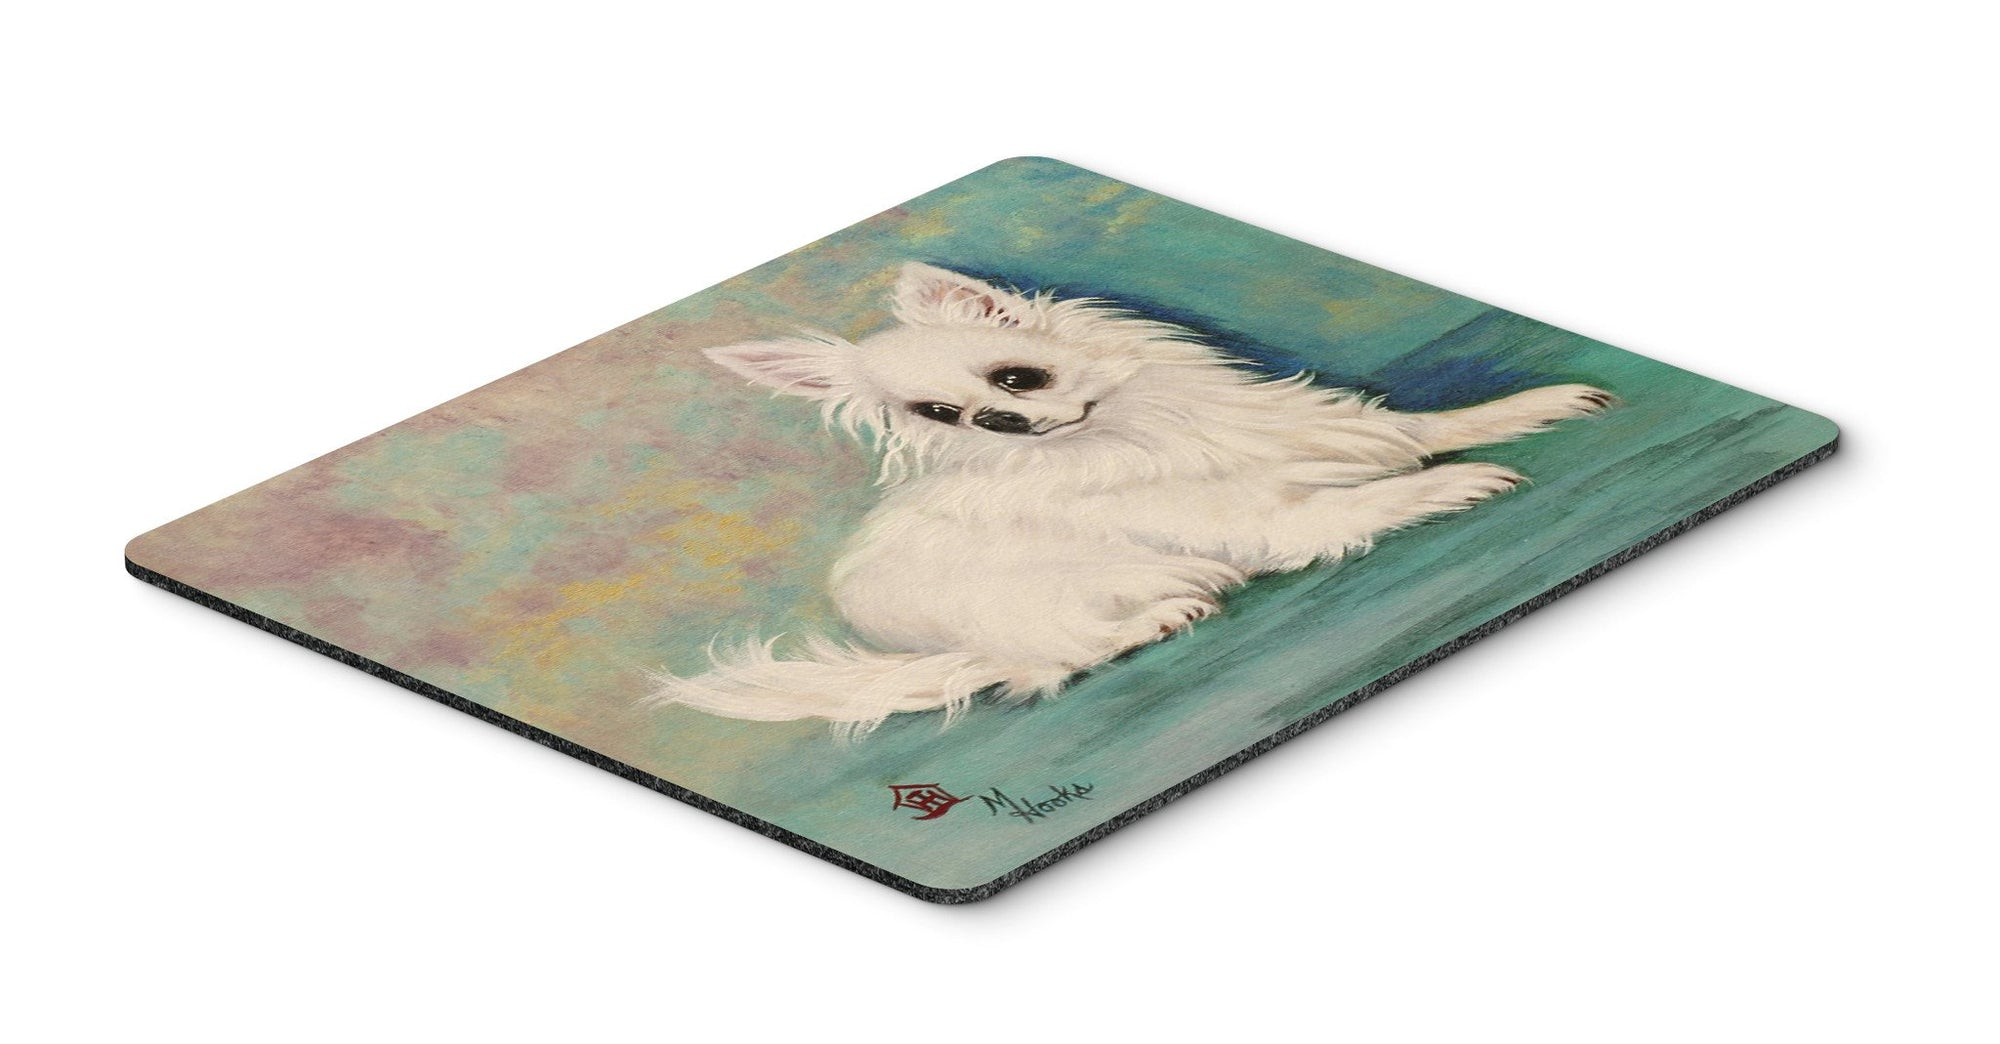 Chihuahua Queen Mother Mouse Pad, Hot Pad or Trivet MH1057MP by Caroline's Treasures